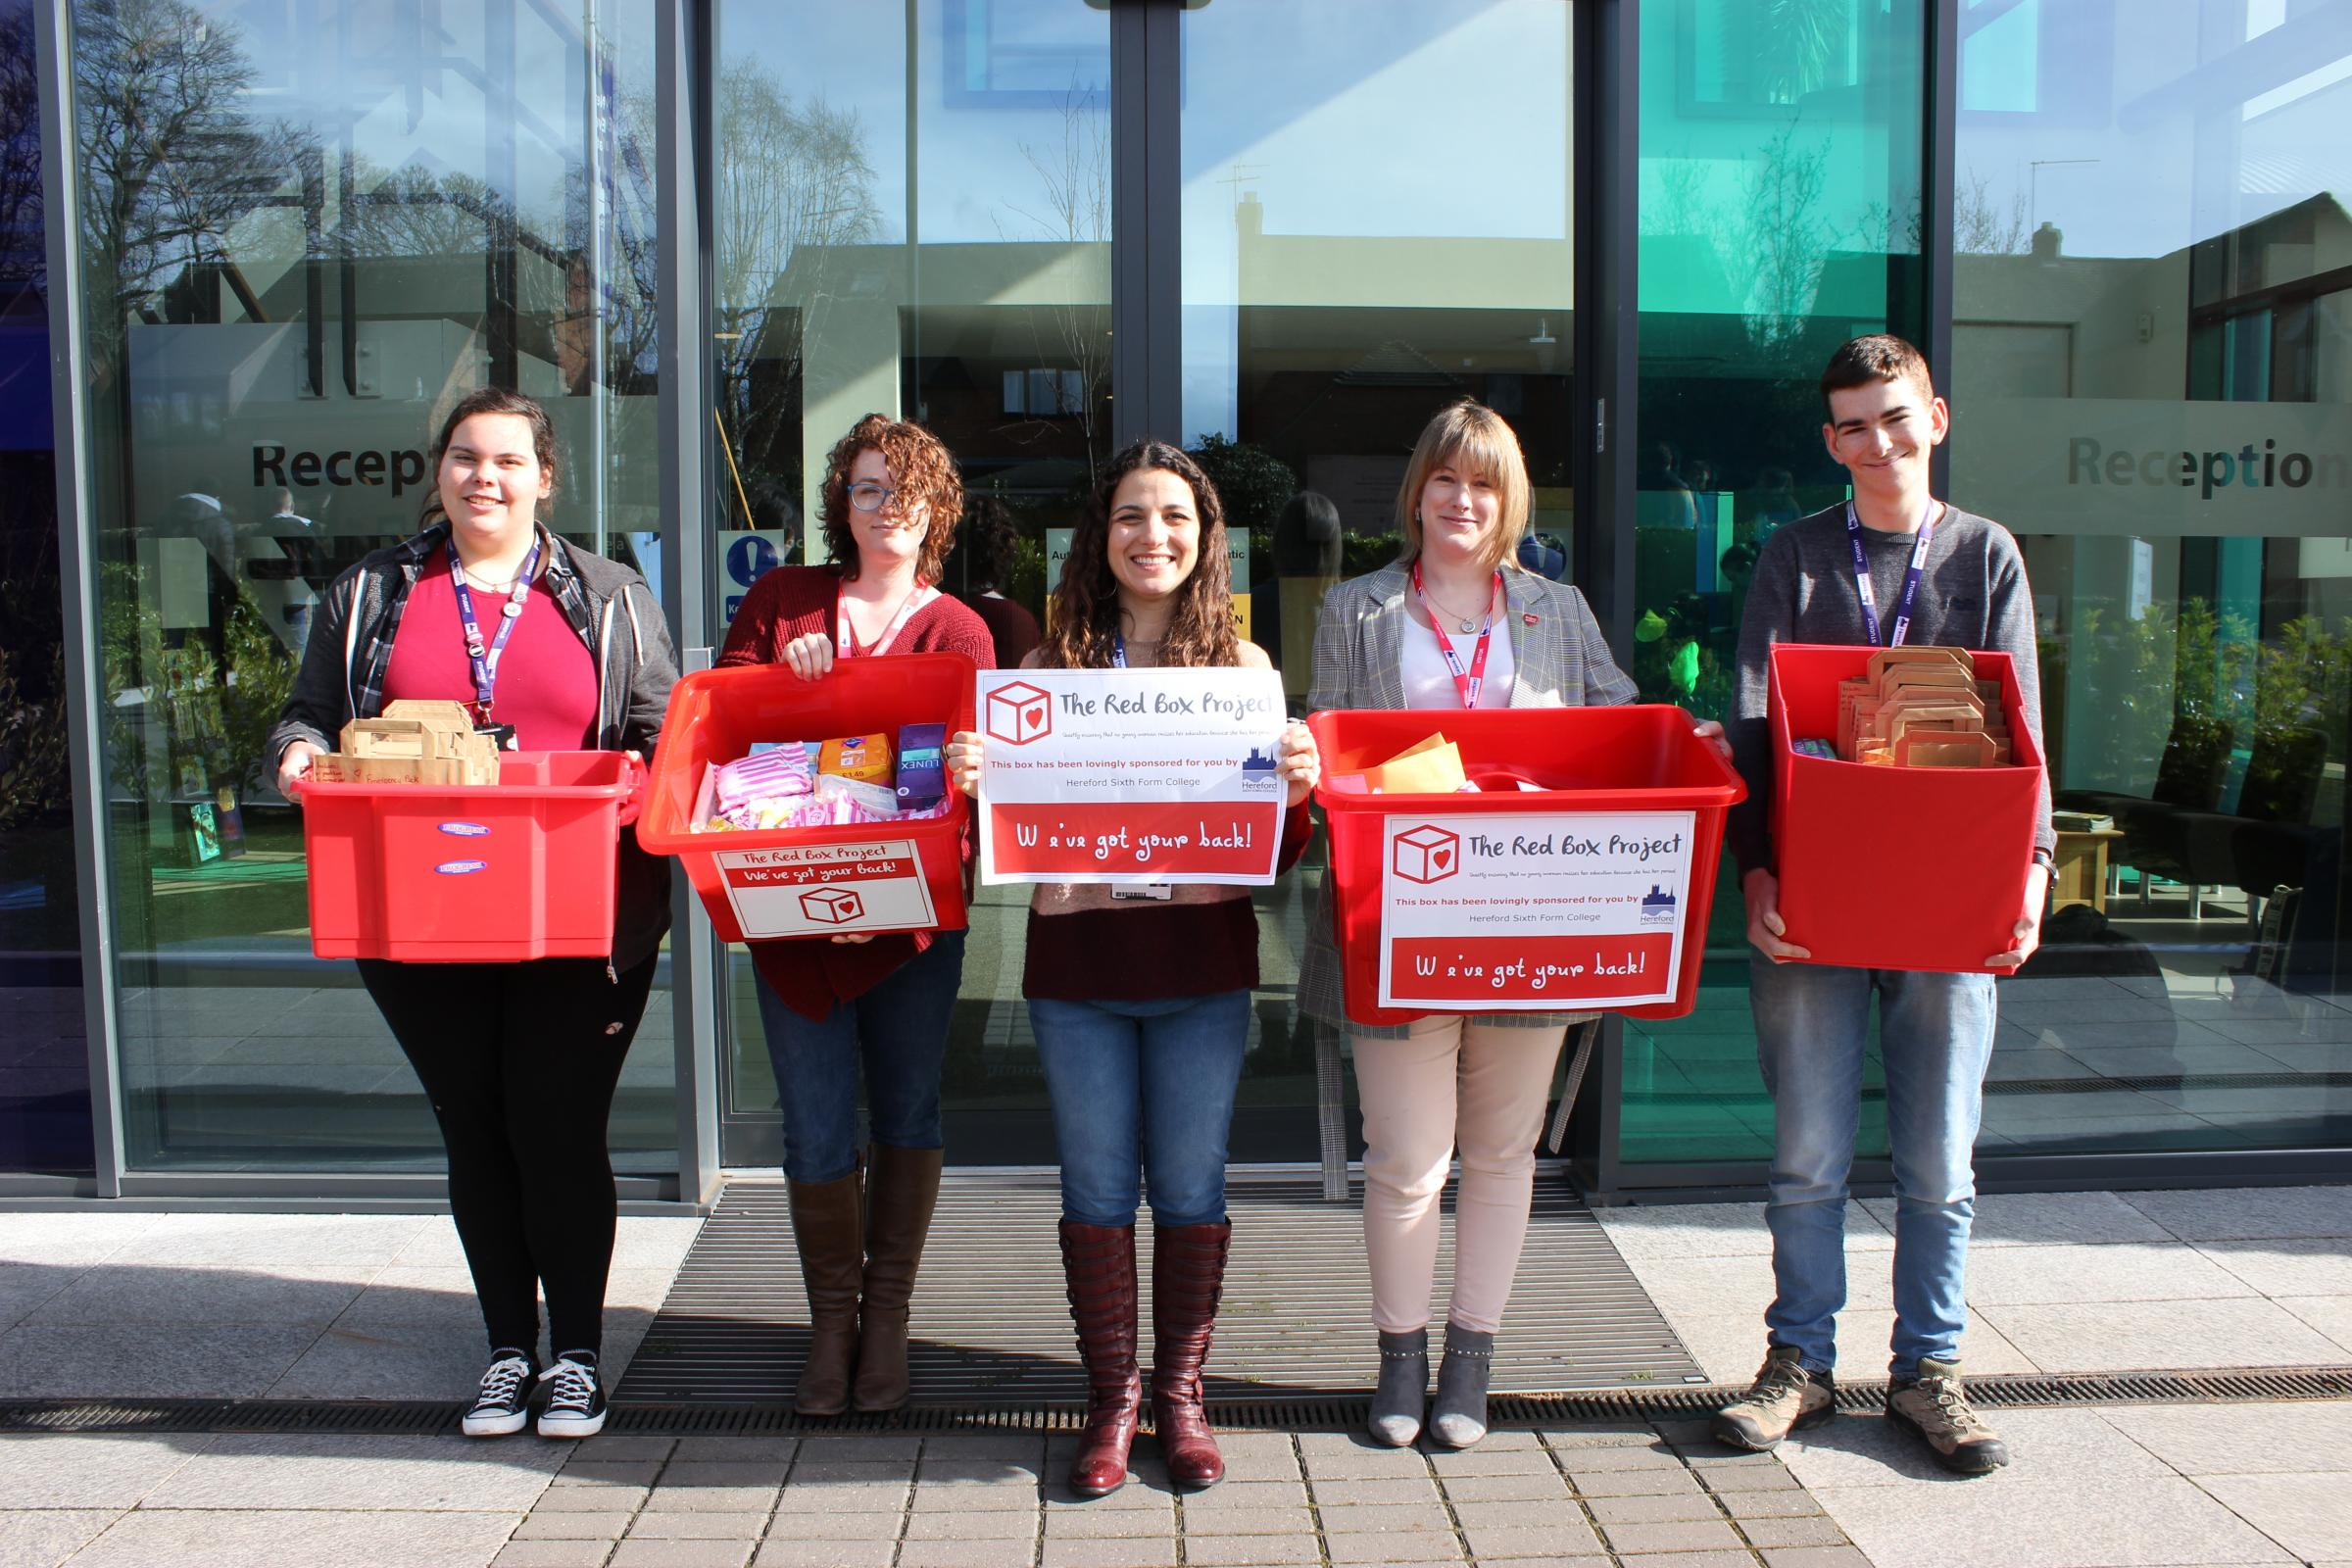 Photo credit: Ed Kowal, Multi Media Producer, Hereford Sixth Form CollegePictured L-R: Phoebe Spencer (student), Sam Marsh (Red Box Project Hereford), Lana Silk, (College Chaplain), Claire Russell (Red Box Project Hereford), and Ed Ceney (student)